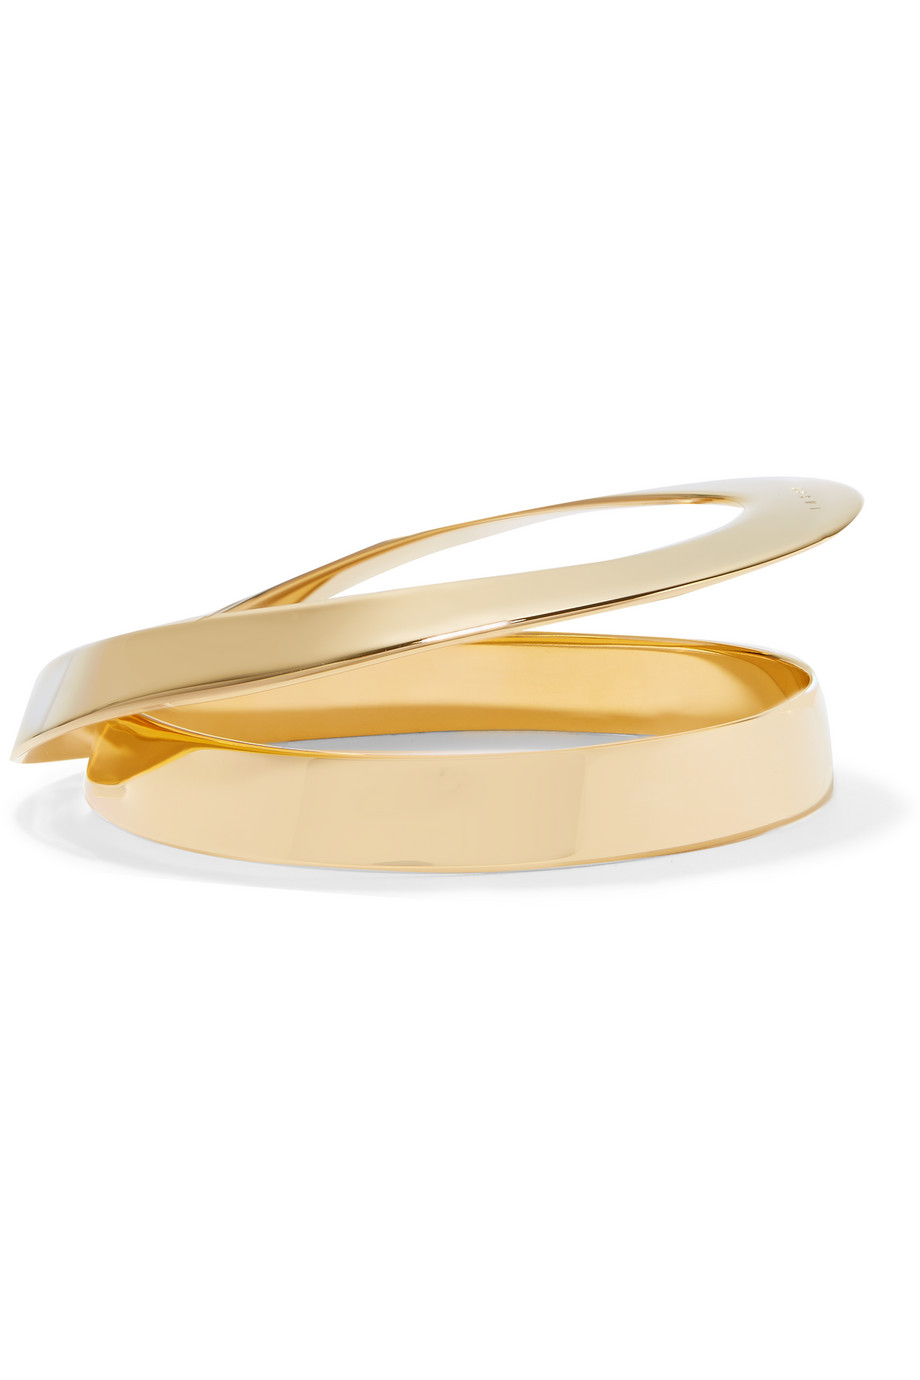 Marni Gold-Plated Bracelet, Women's